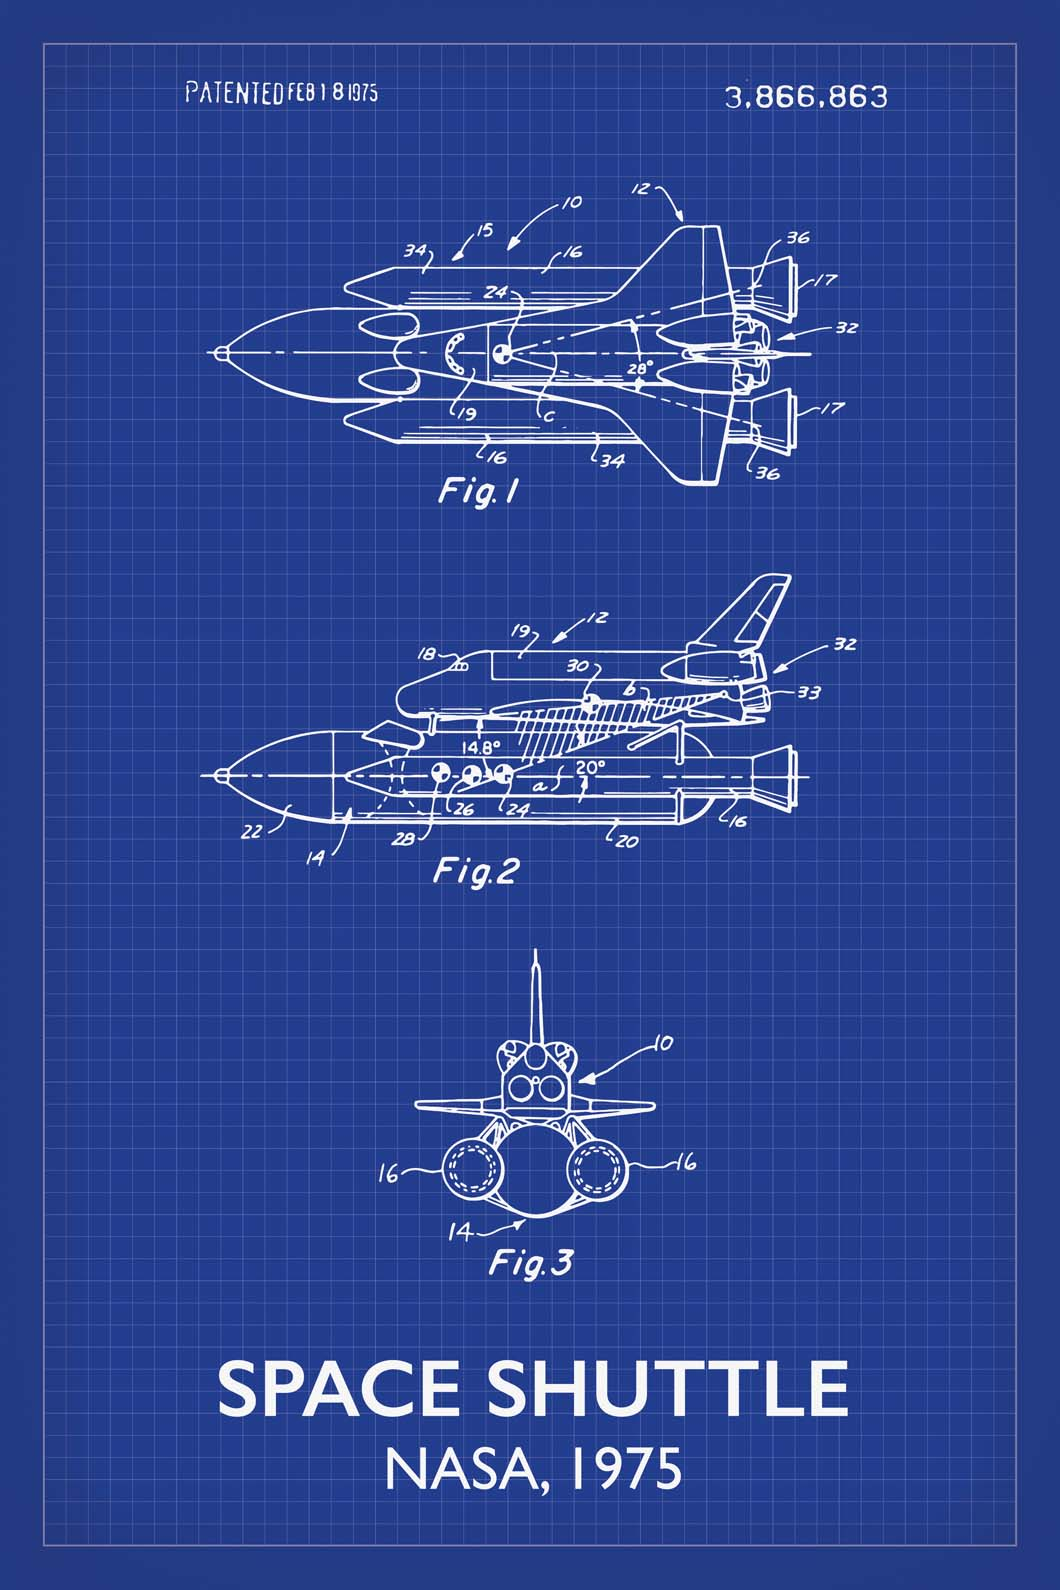 Space Shuttle Patent Print - 16X24 Inches / Titled Blueprint / Art Poster